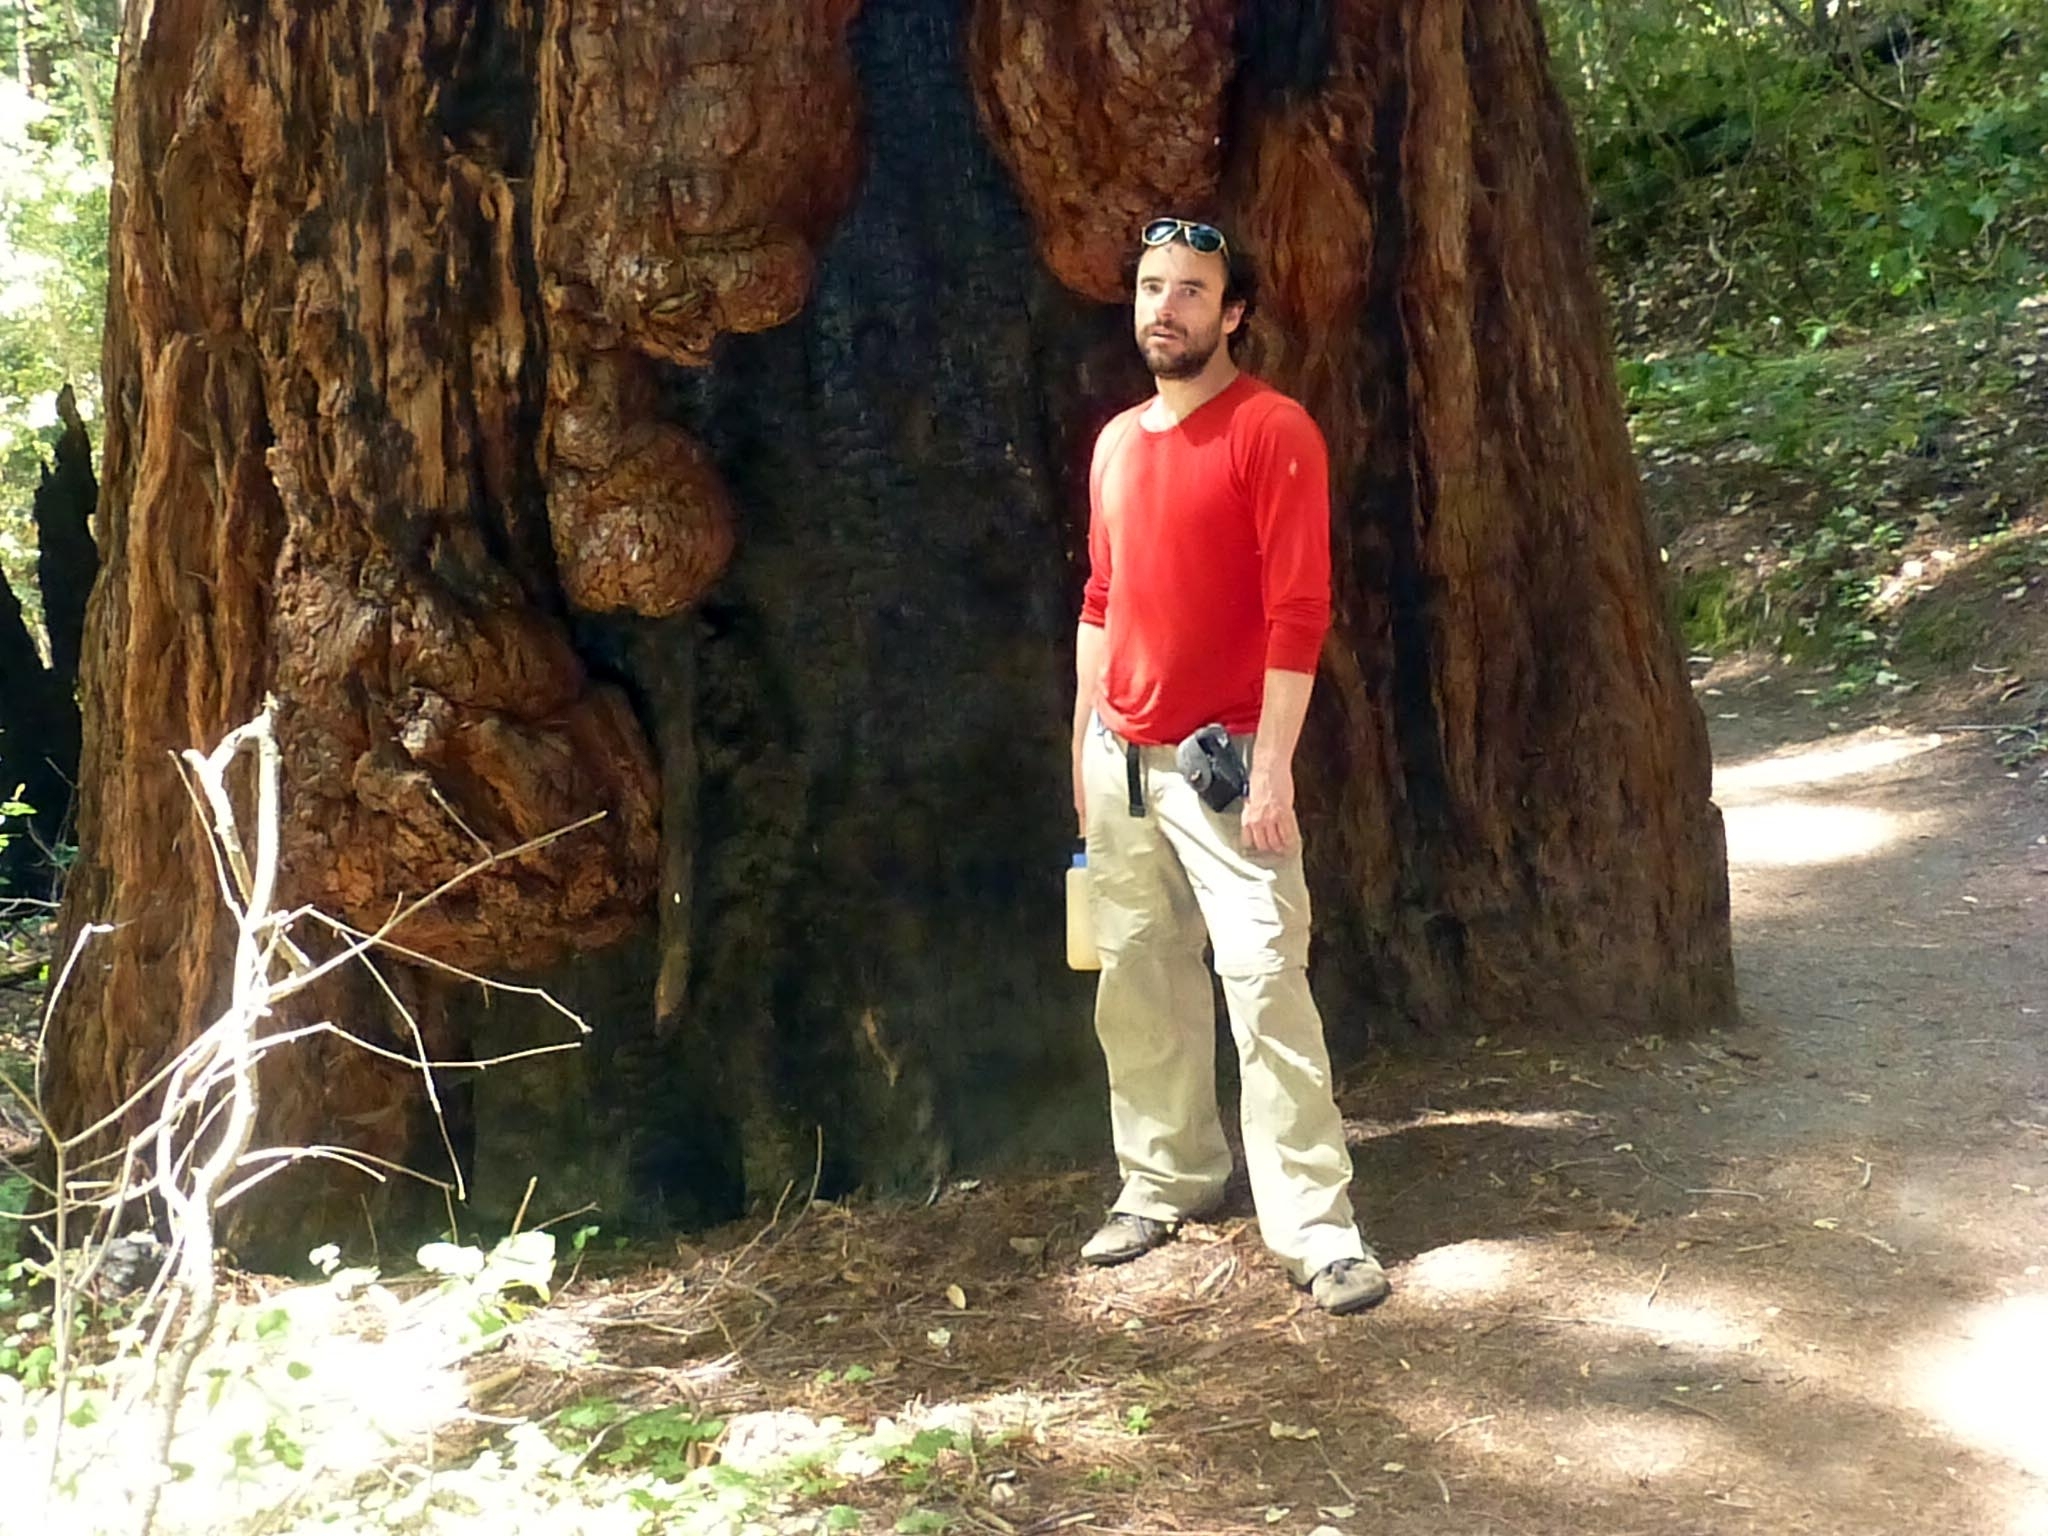 This coastal redwood behemoth is so immense in scale that you can barely even see me standing in front of it. Look for a splotch of red. (photo by I. Stout)